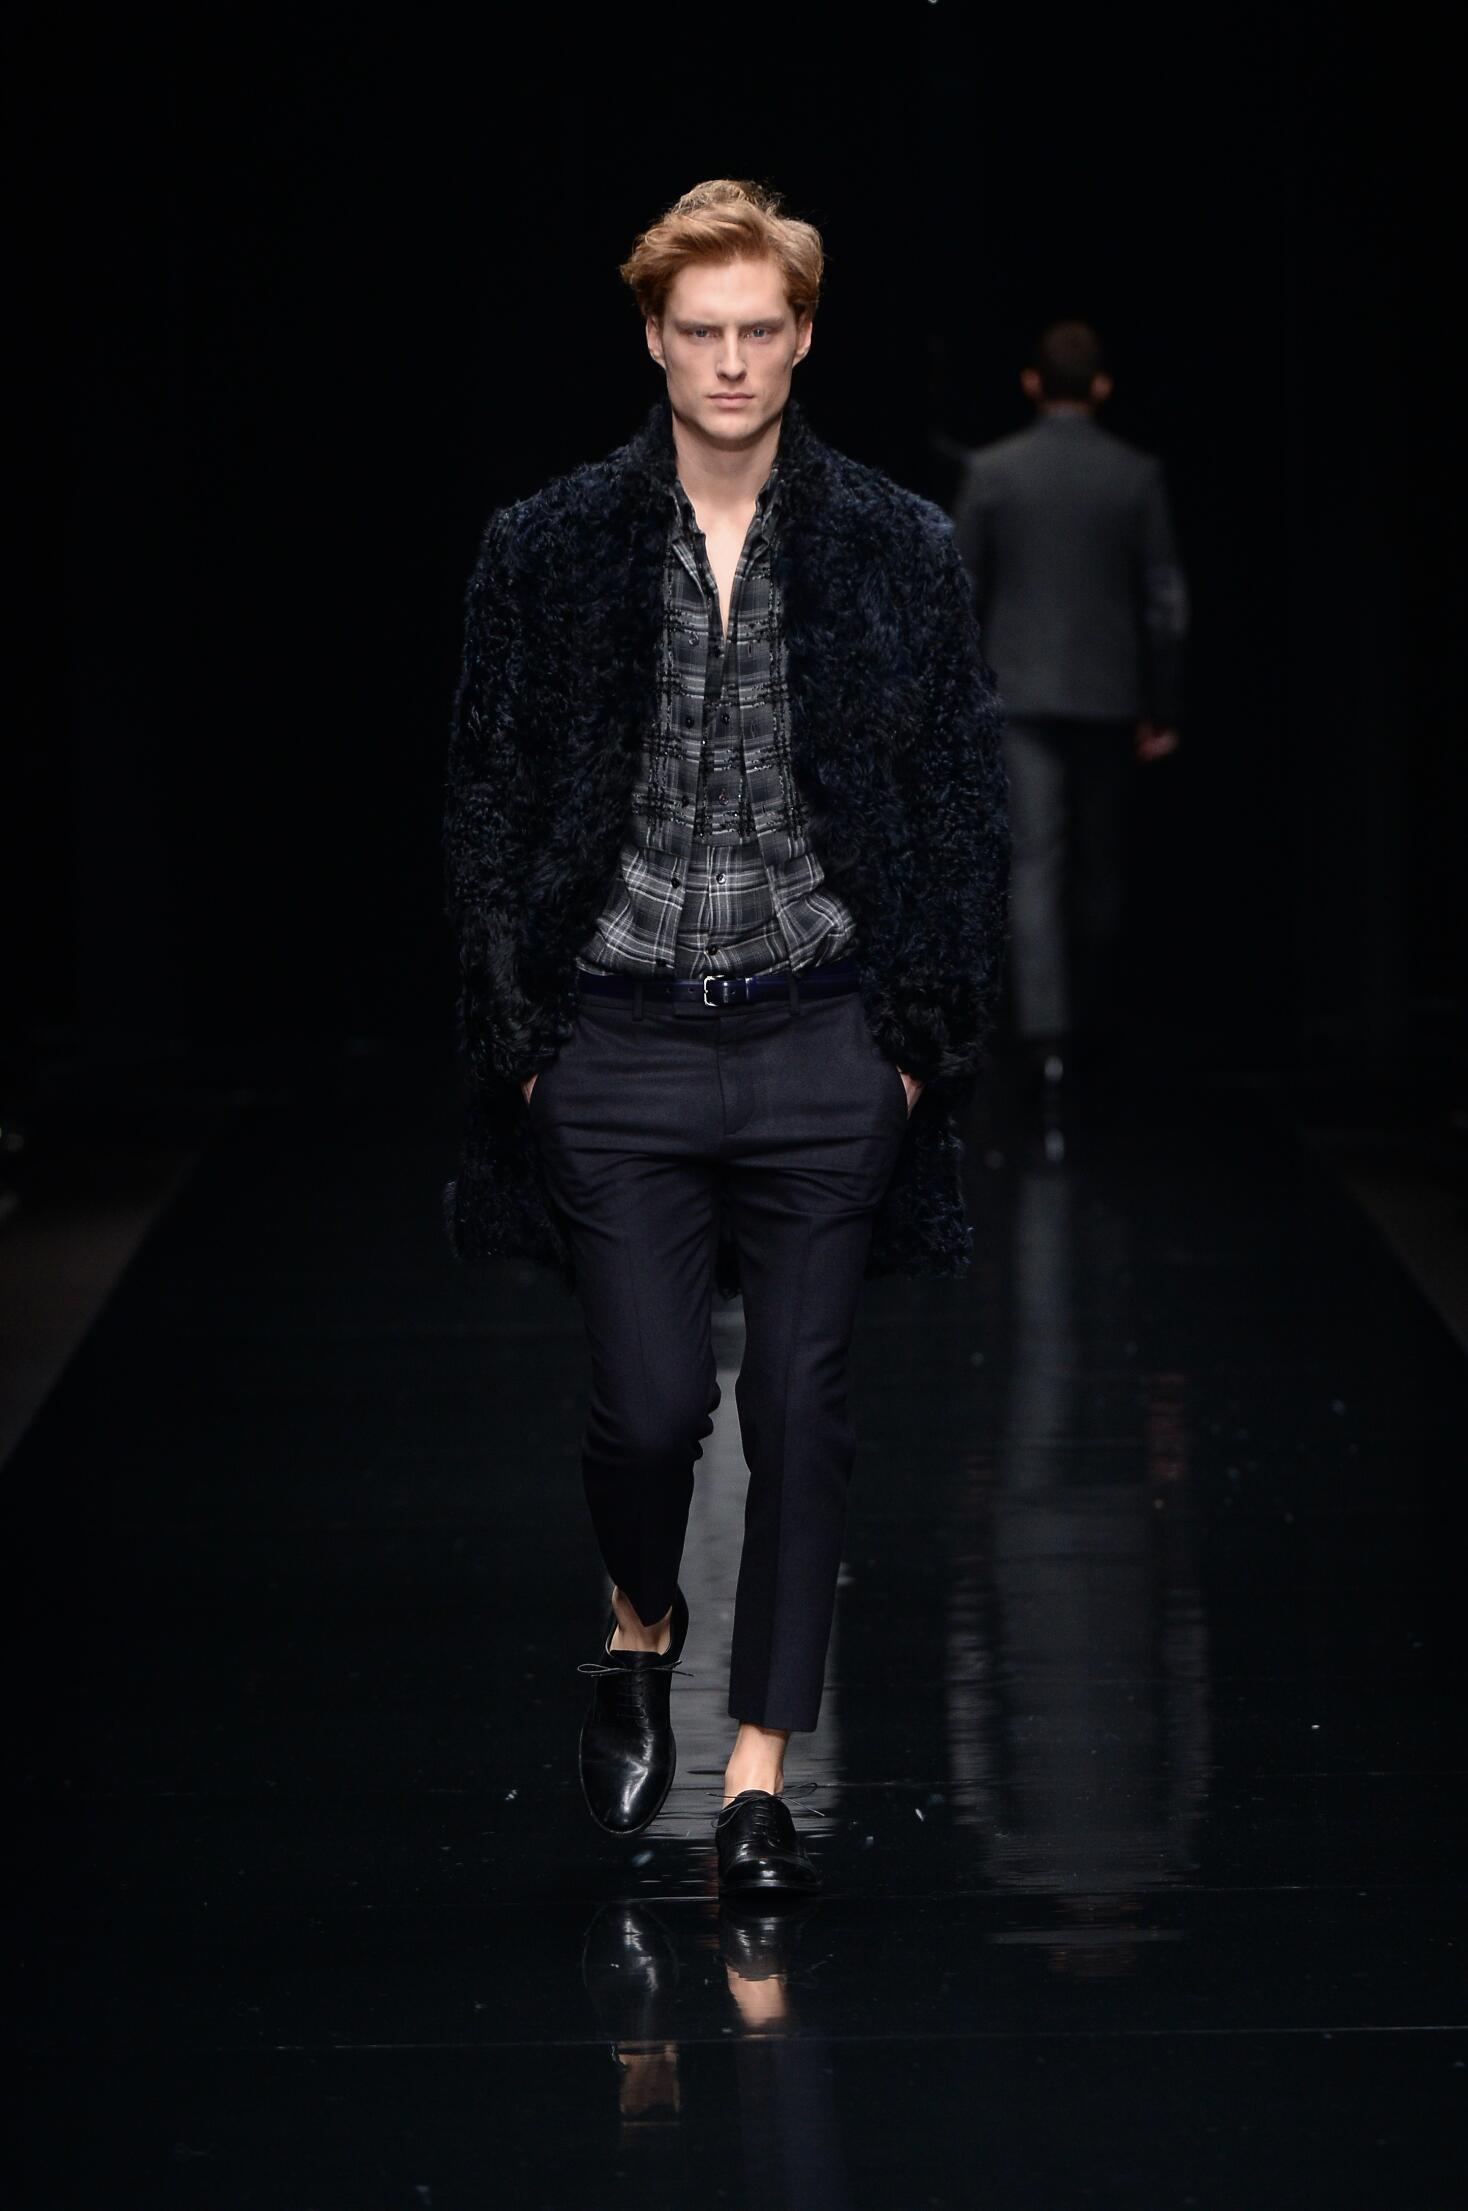 Catwalk Ermanno Scervino Fall Winter 2015 16 Men's Collection Milano Fashion Week